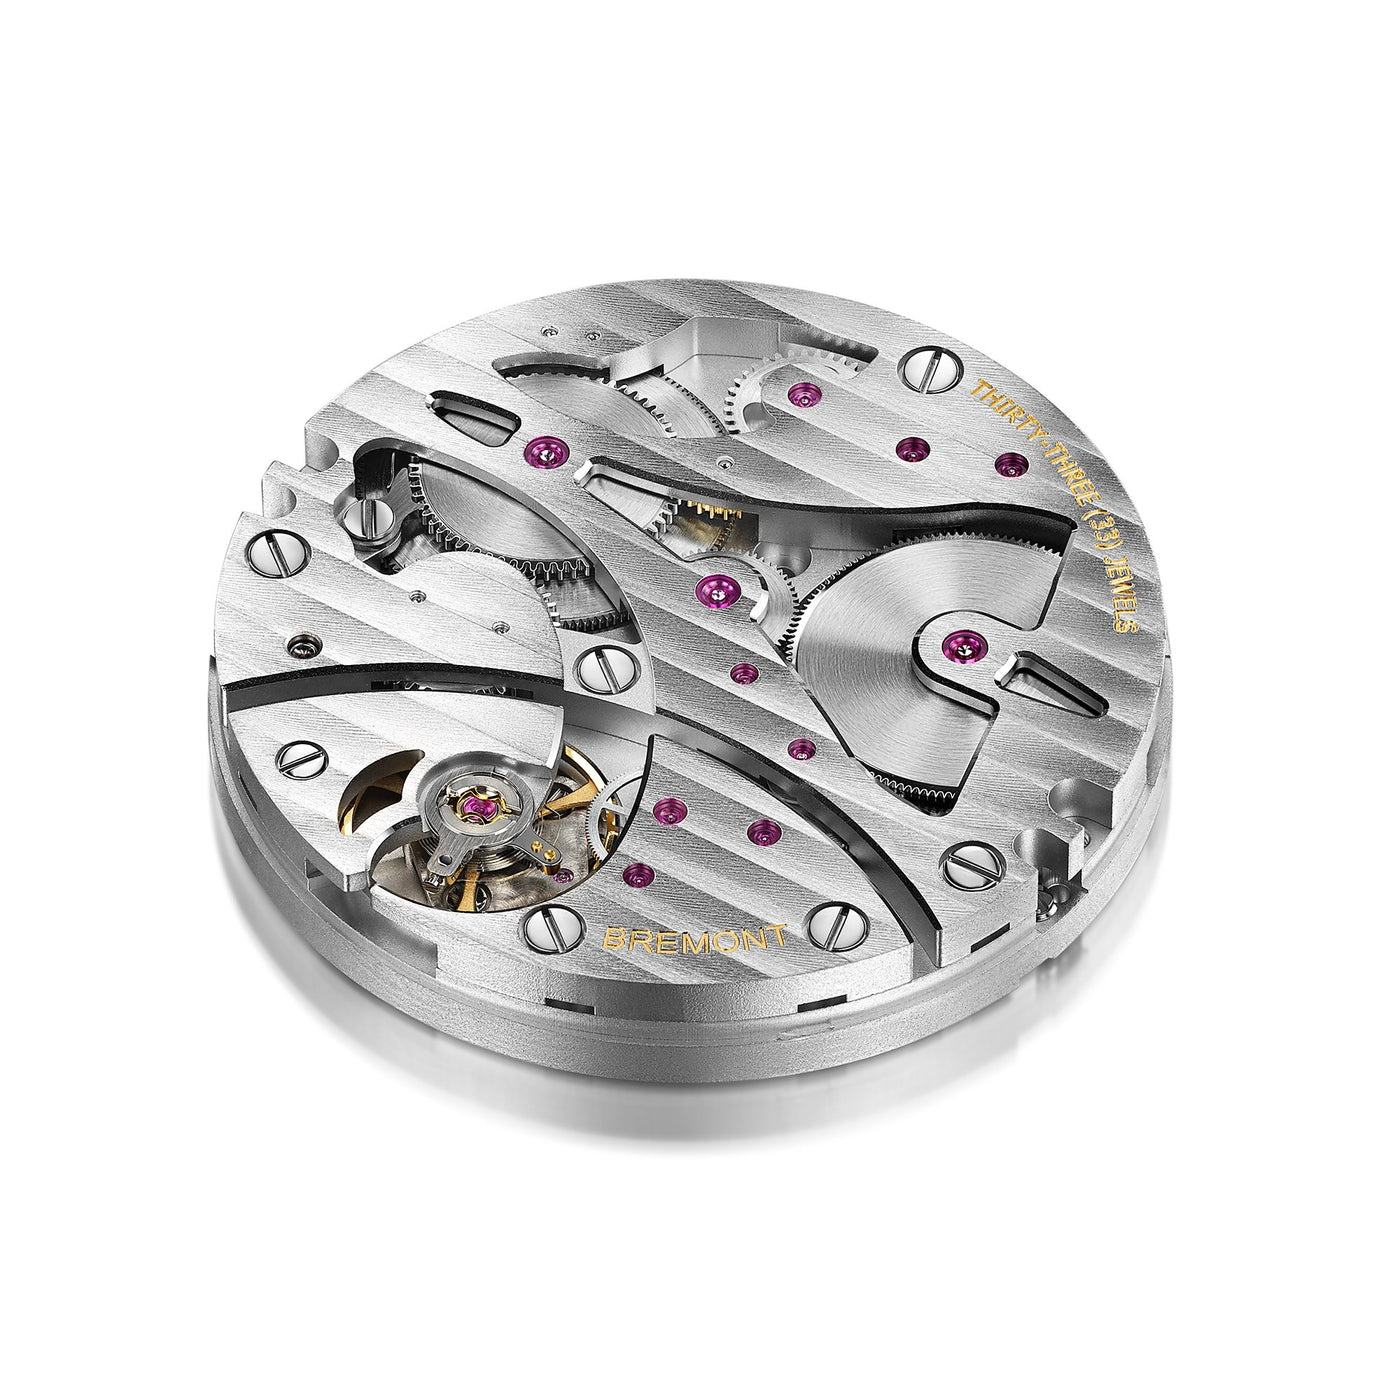 Bremont Limited Edition Movement